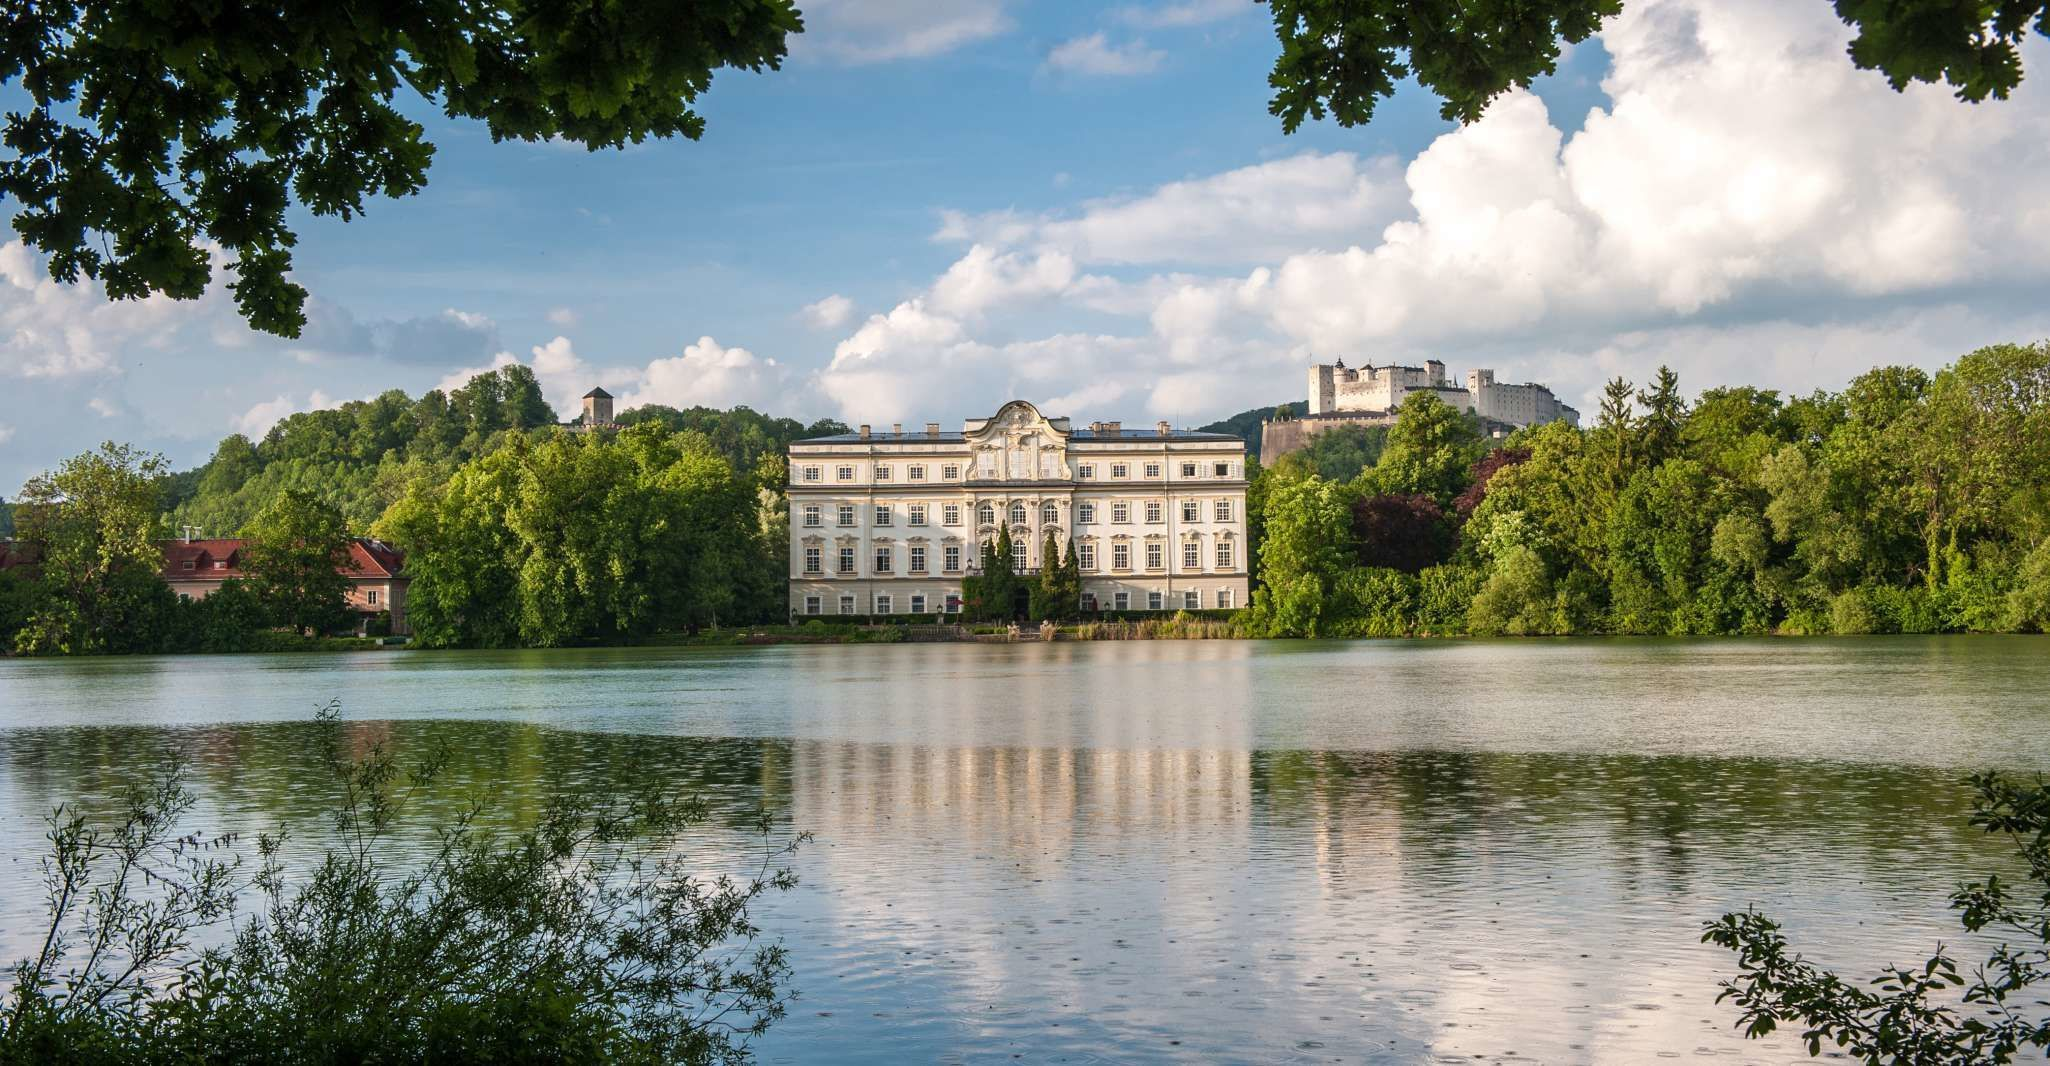 The Original Sound of Music Tour: Salzburg & Surroundings